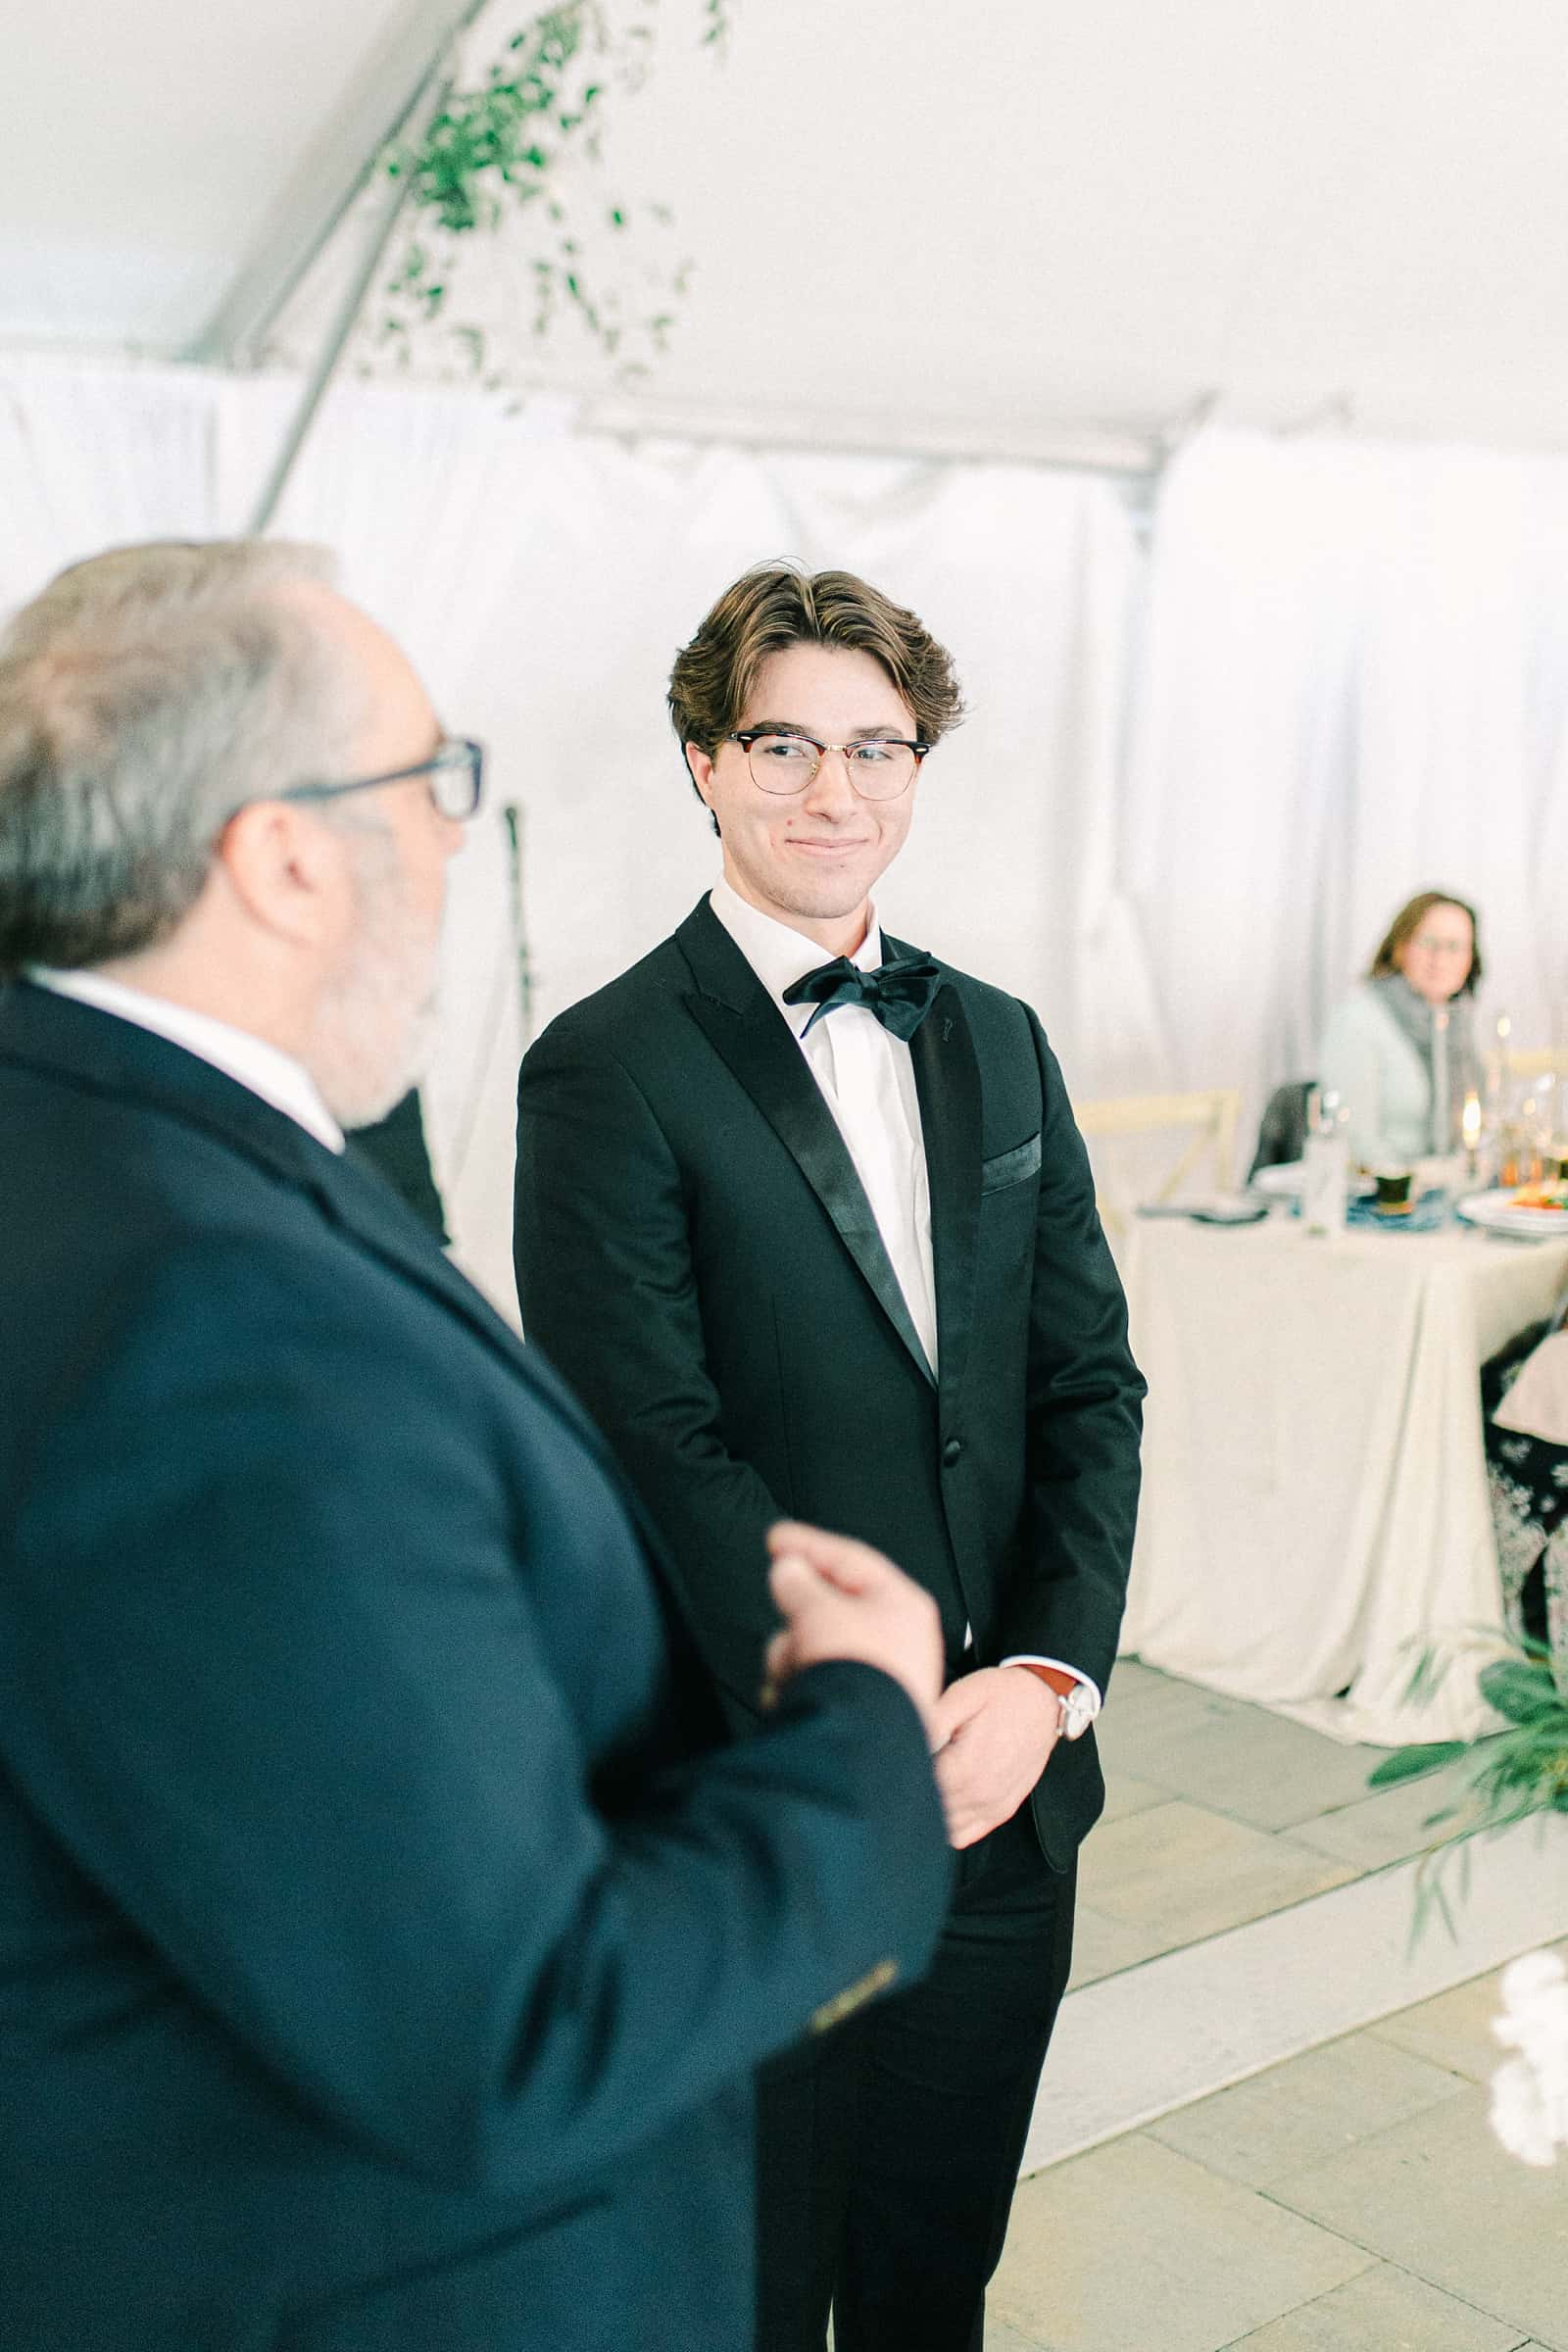 Winter wedding with white tent ceremony, groom looking at bride